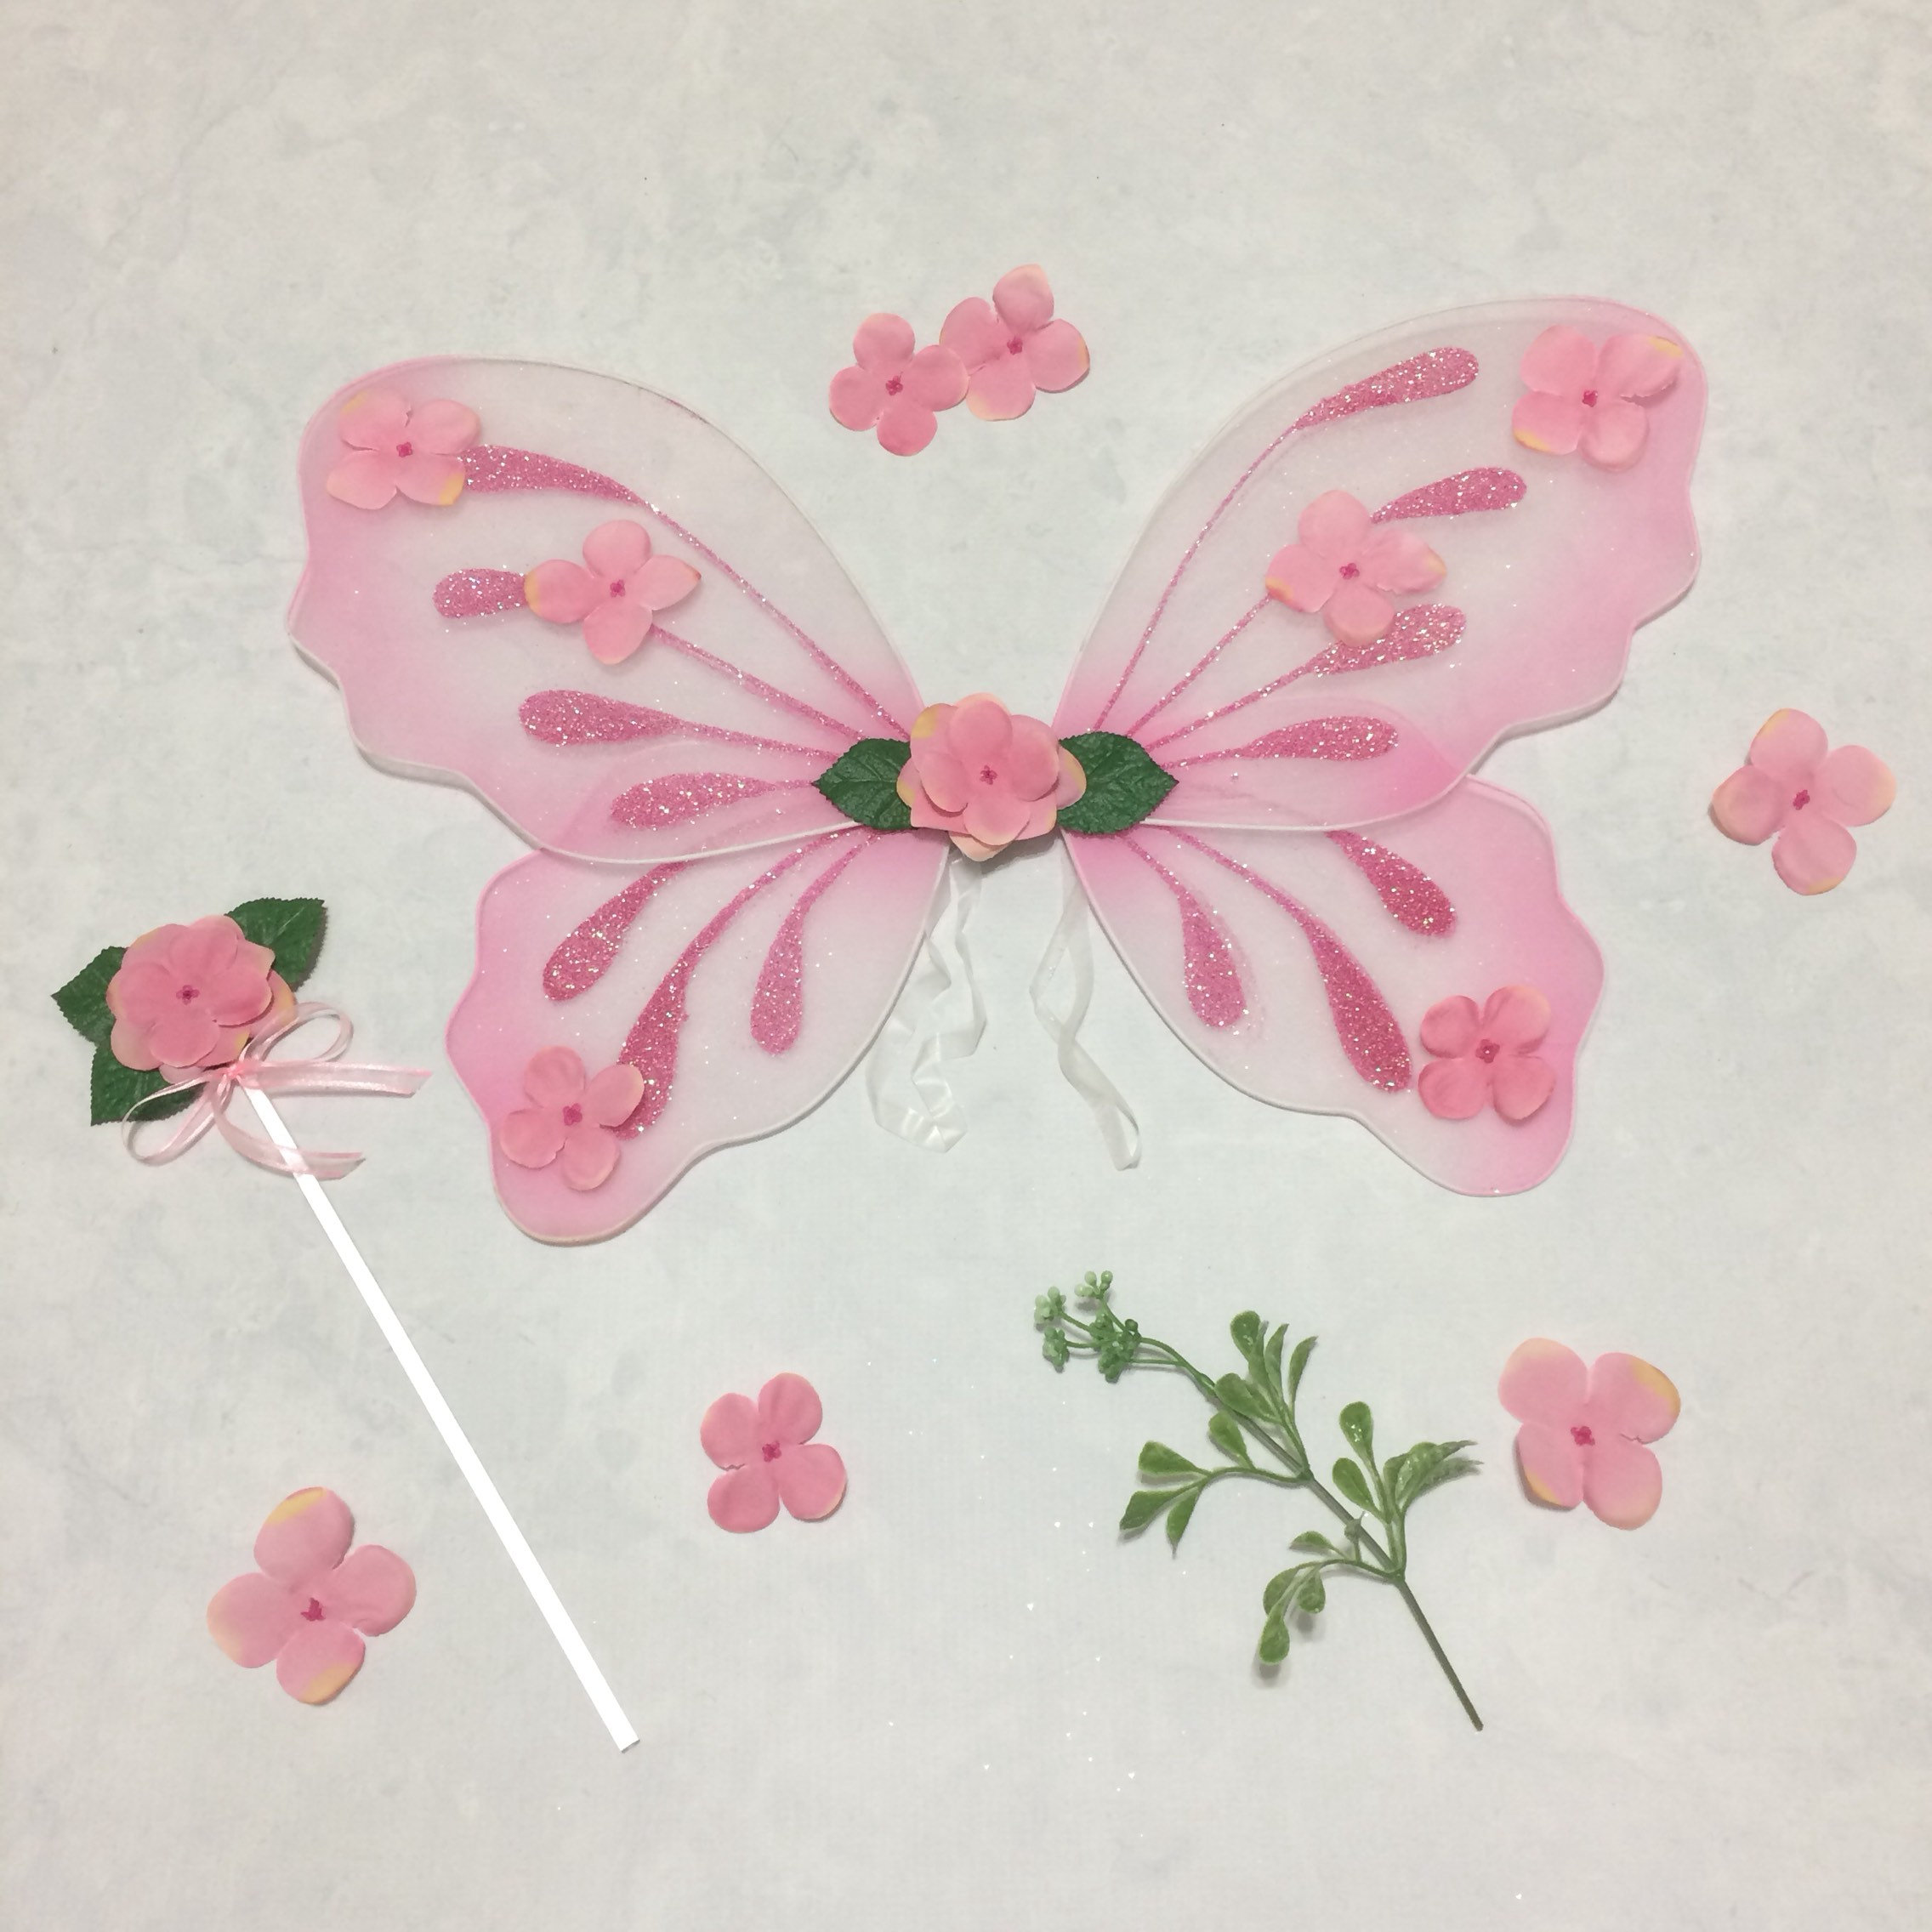 Pink Costume Fairy Wings Pixie Cosplay Princess Wand Flower Girl Accessory Shabby Chic Vintage Rustic Outfit Woodland Halloween Costume Set